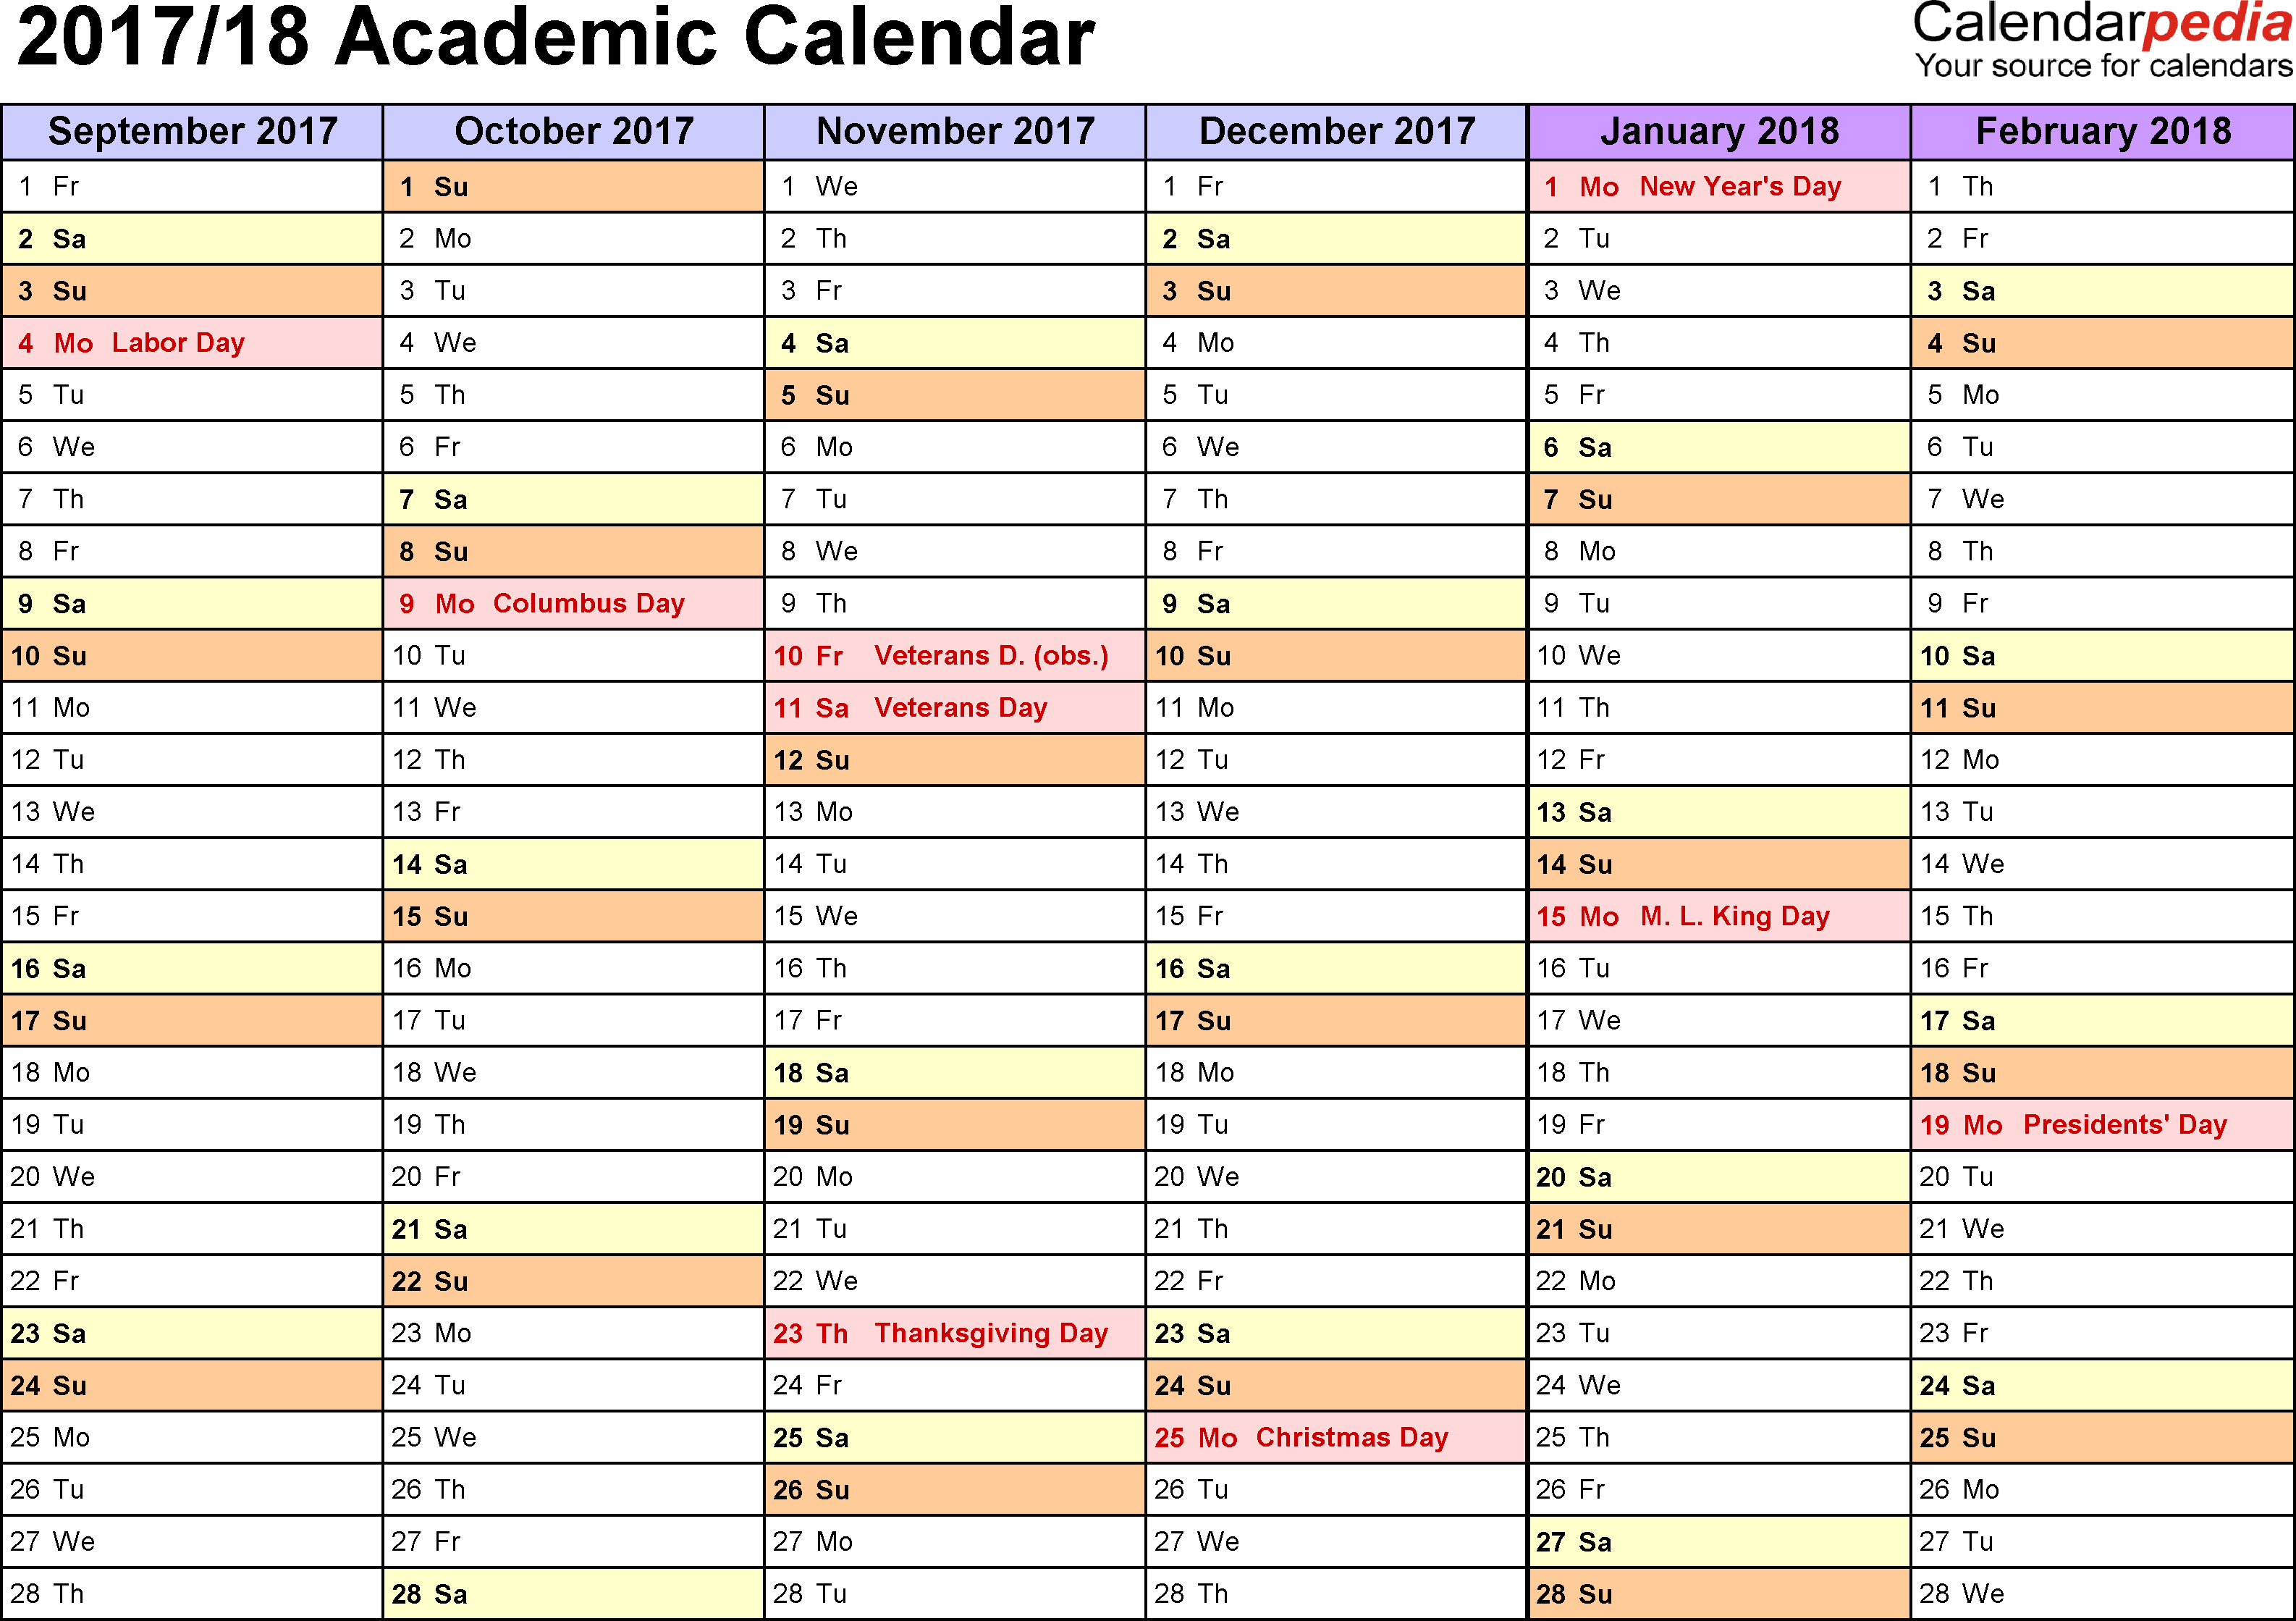 Template 2: Academic calendar 2017/18 for Word, landscape orientation, months horizontally, 2 pages